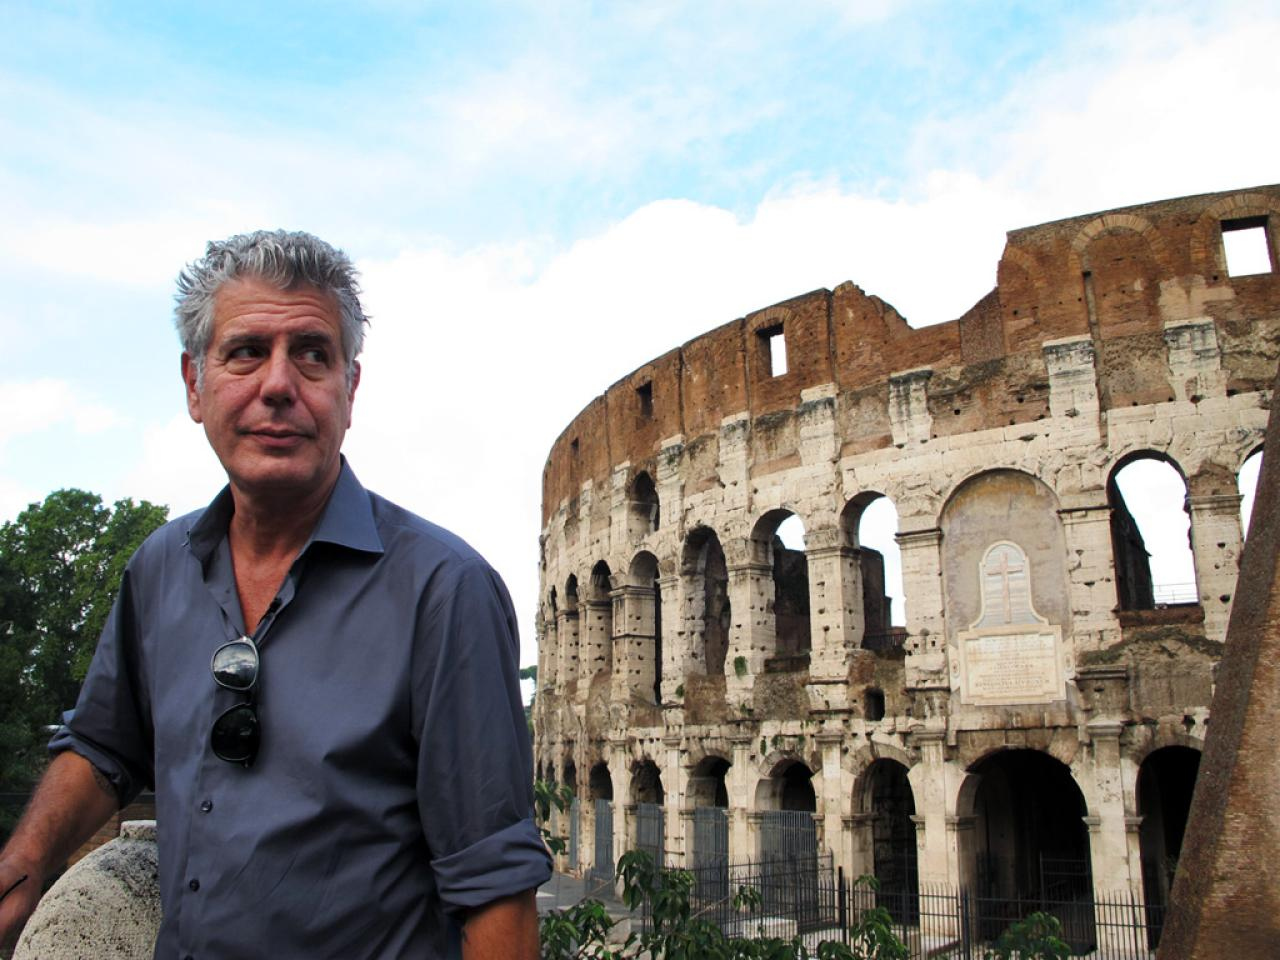 Anthony Bourdain in The Layover: Rome